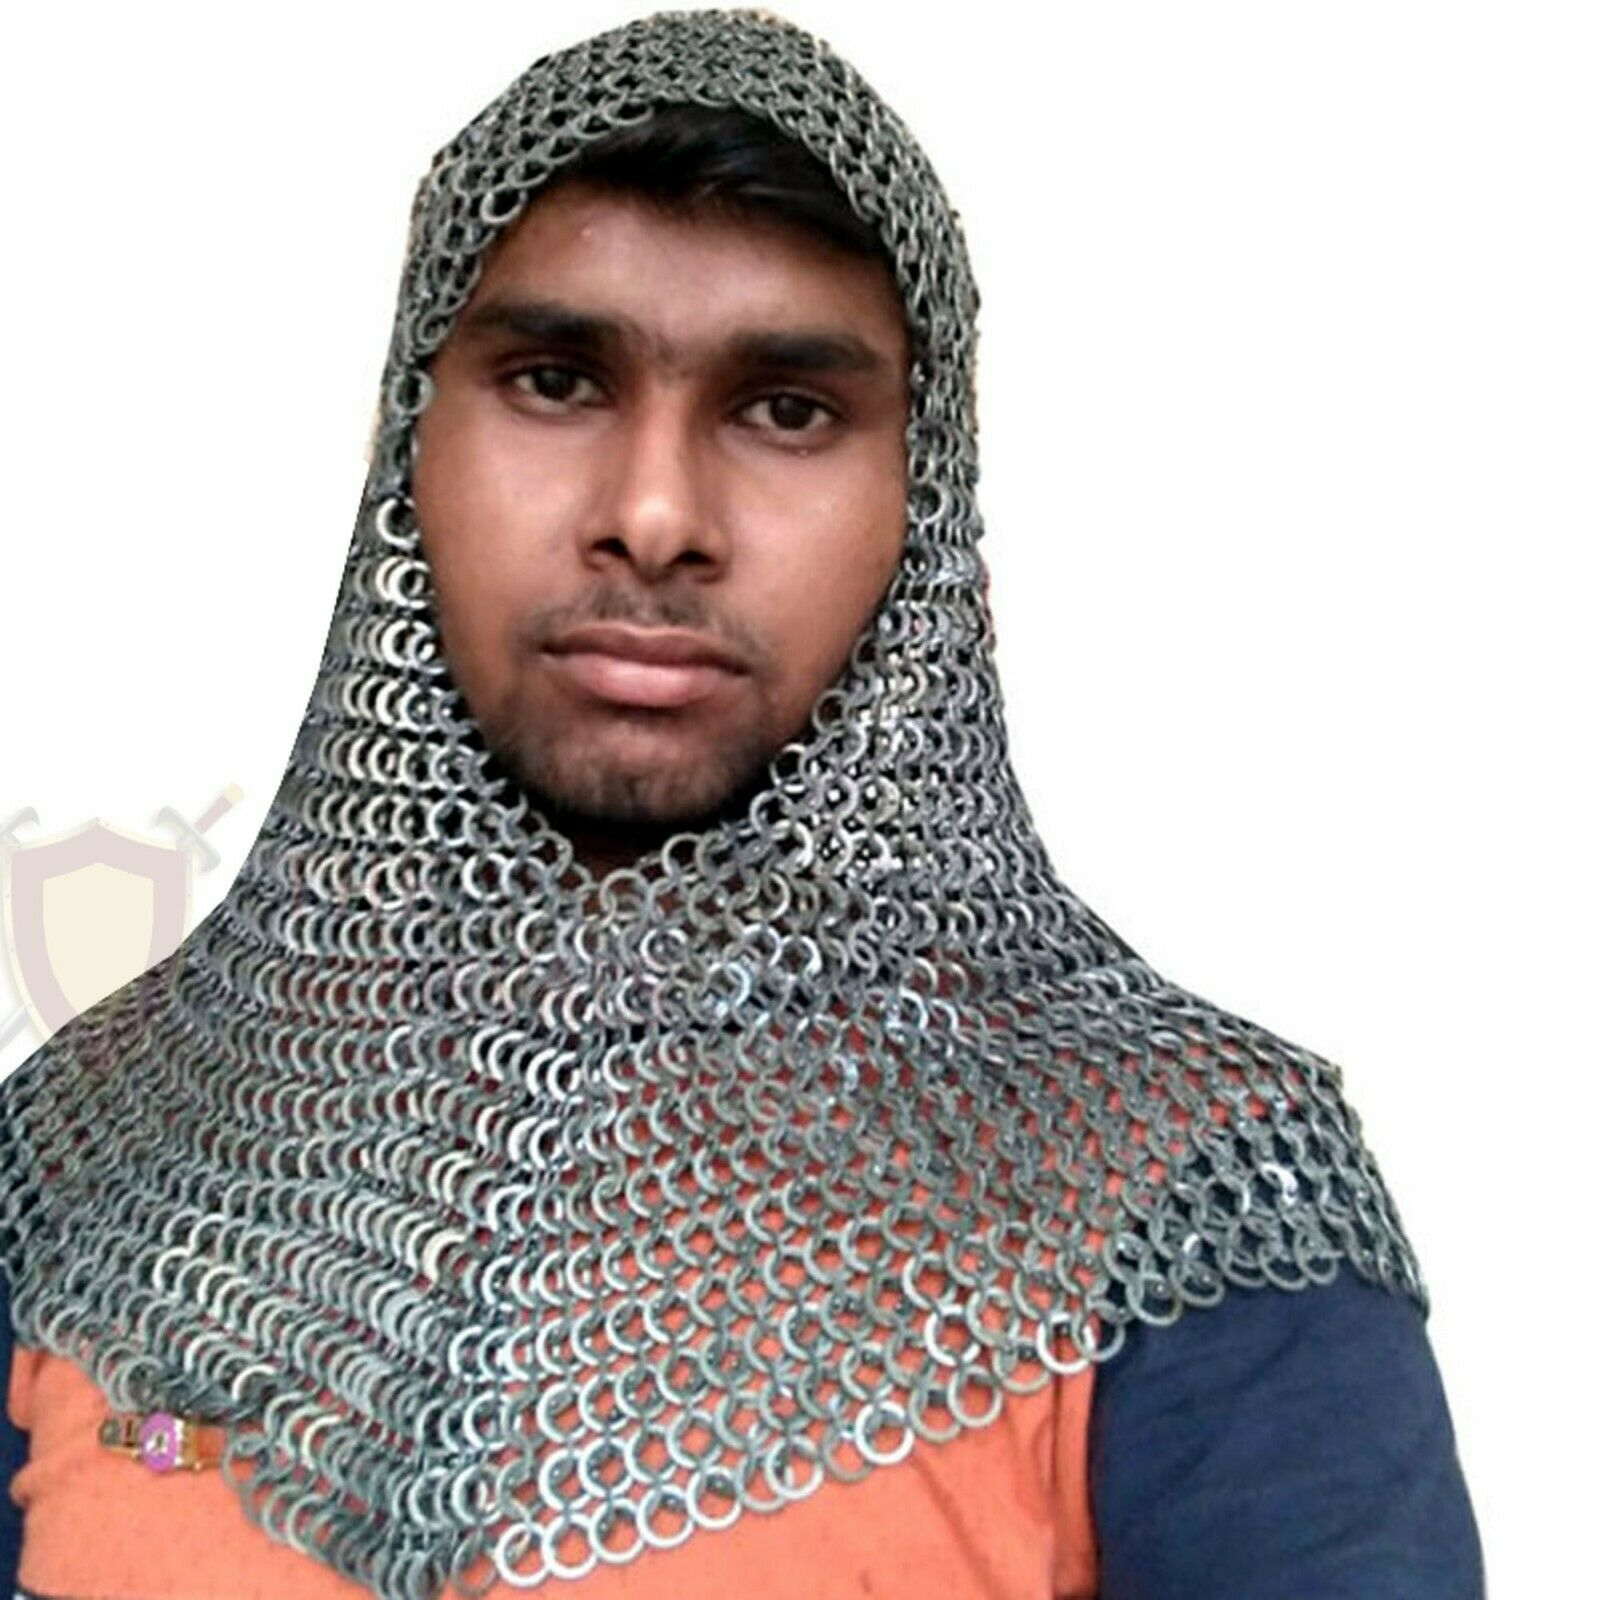 THE MEDIEVALS Chain Mail Hood V shape 09 MM ID MS Flat Riveted Armor SCA LARP